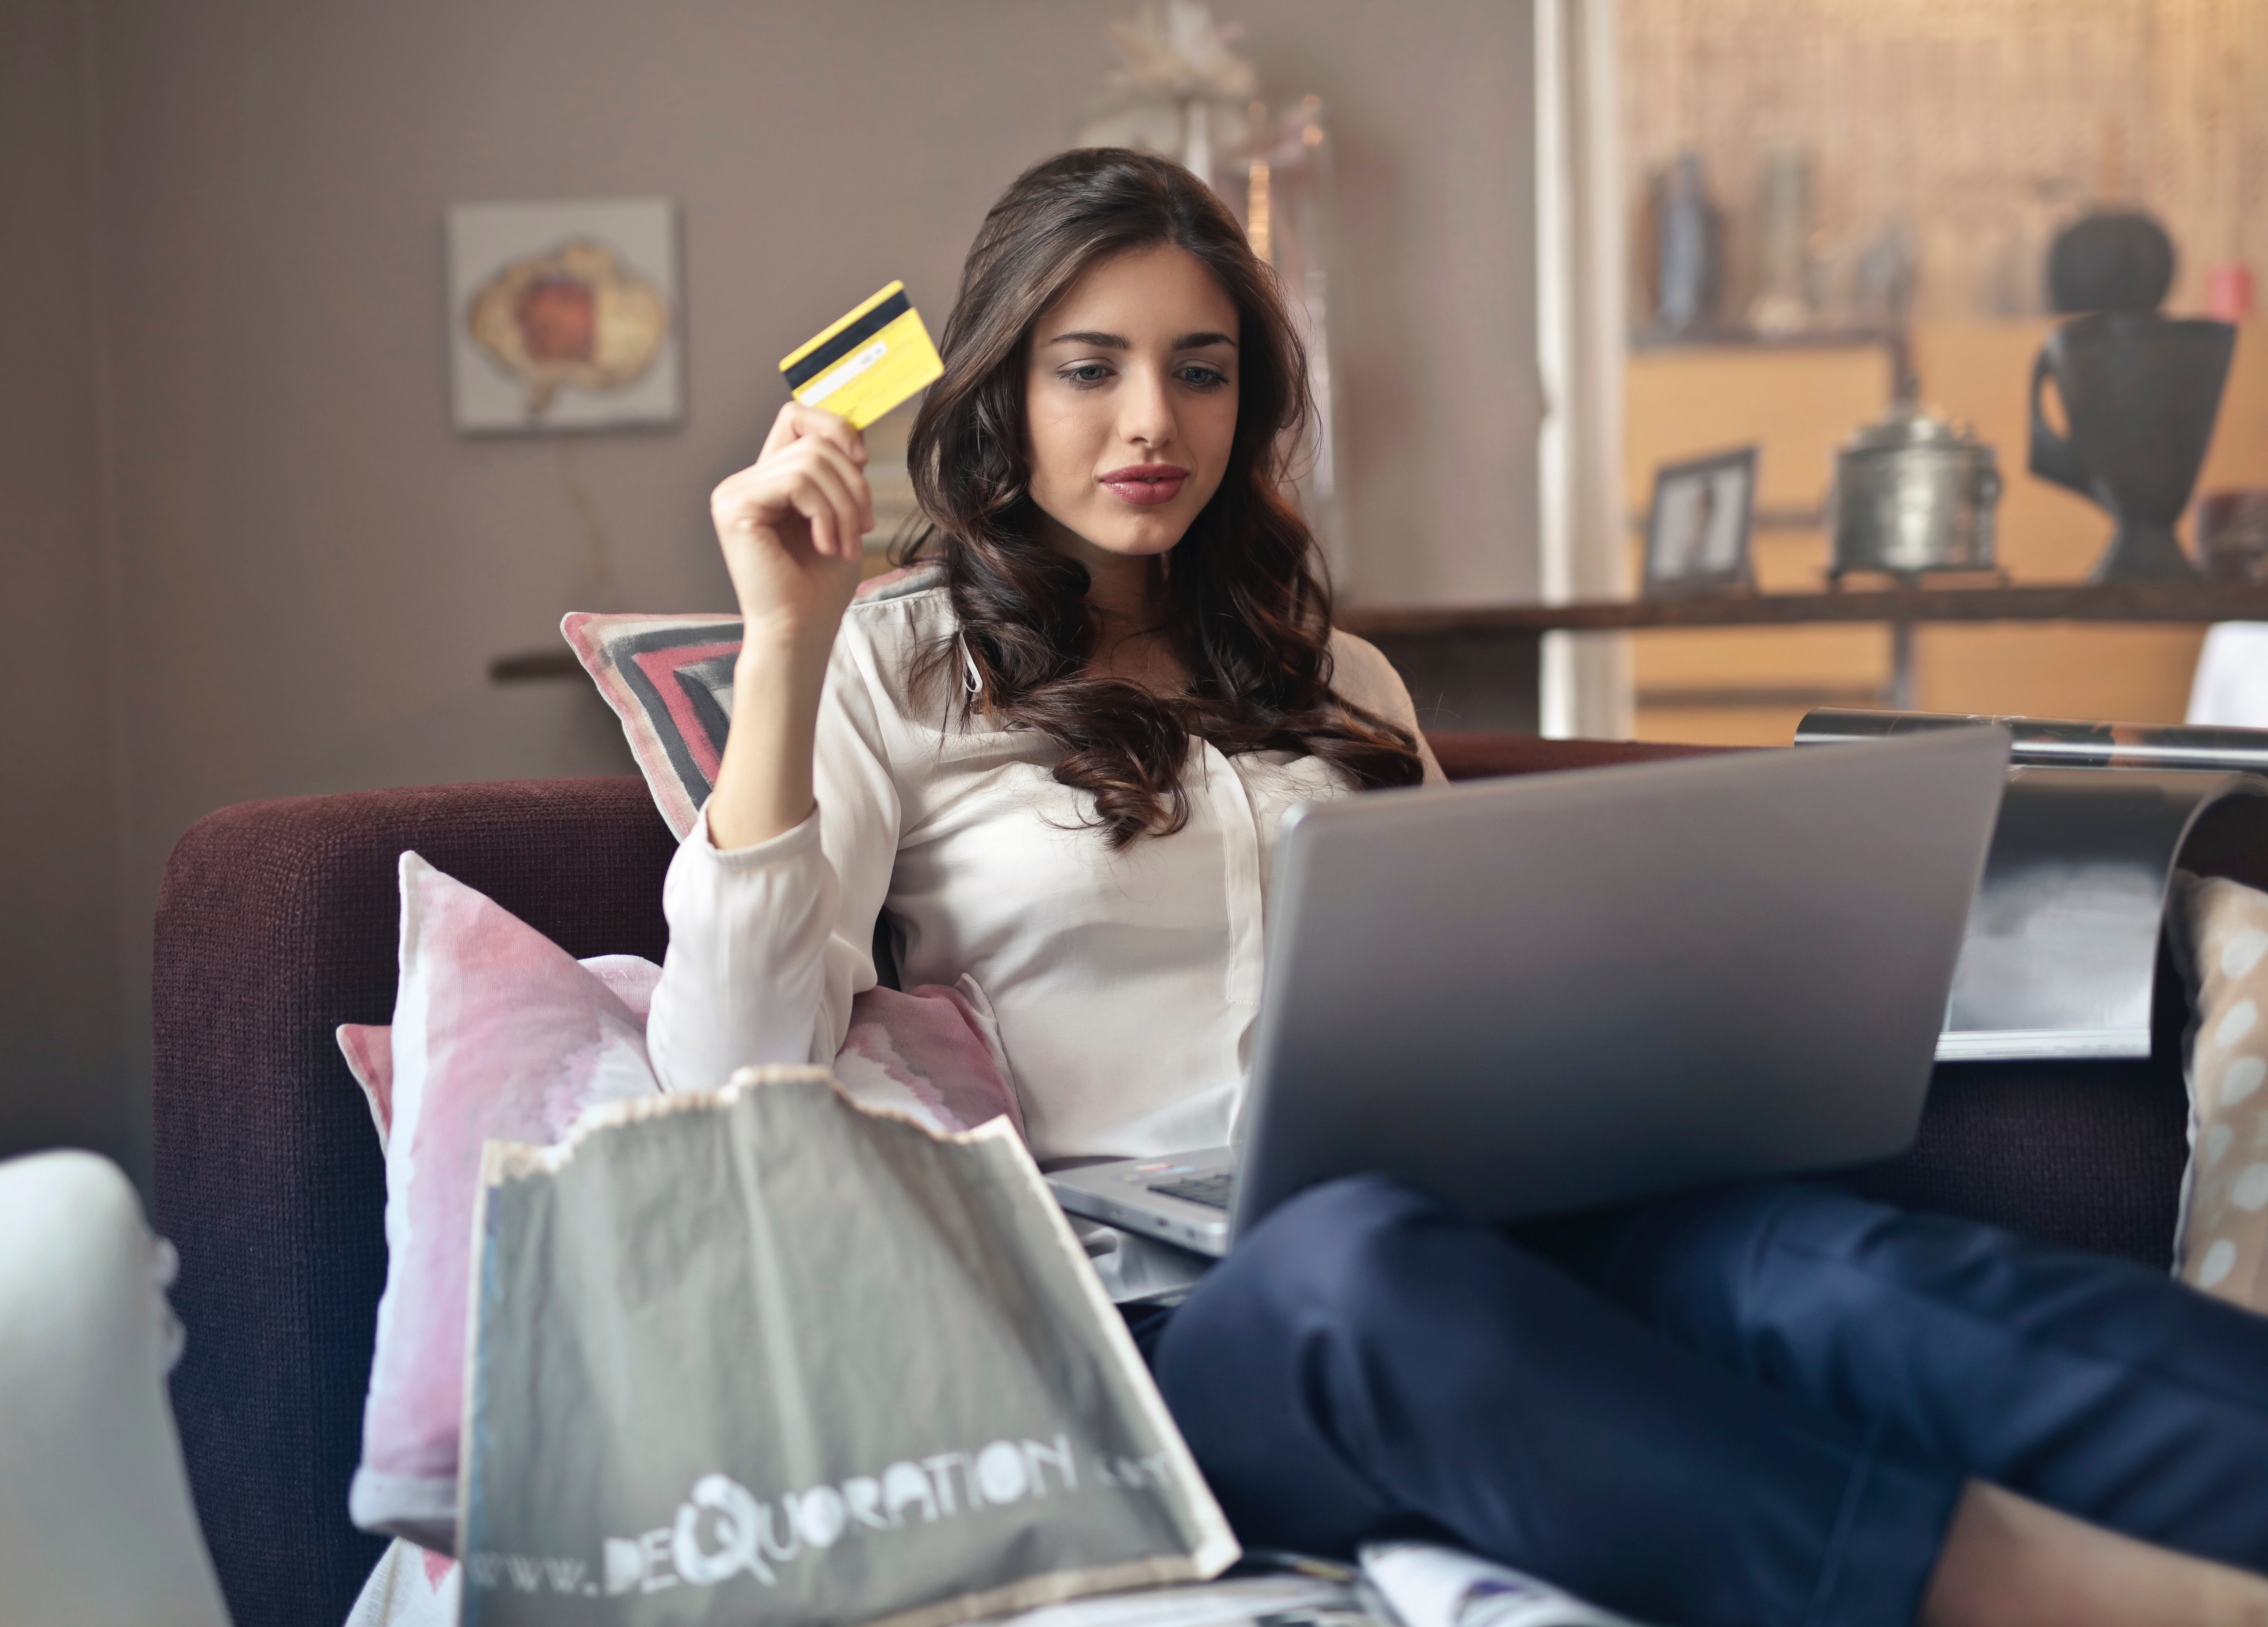 Woman Holding Card While Operating Silver Laptop, Adolescent, Payment, Laptop, Leisure, HQ Photo